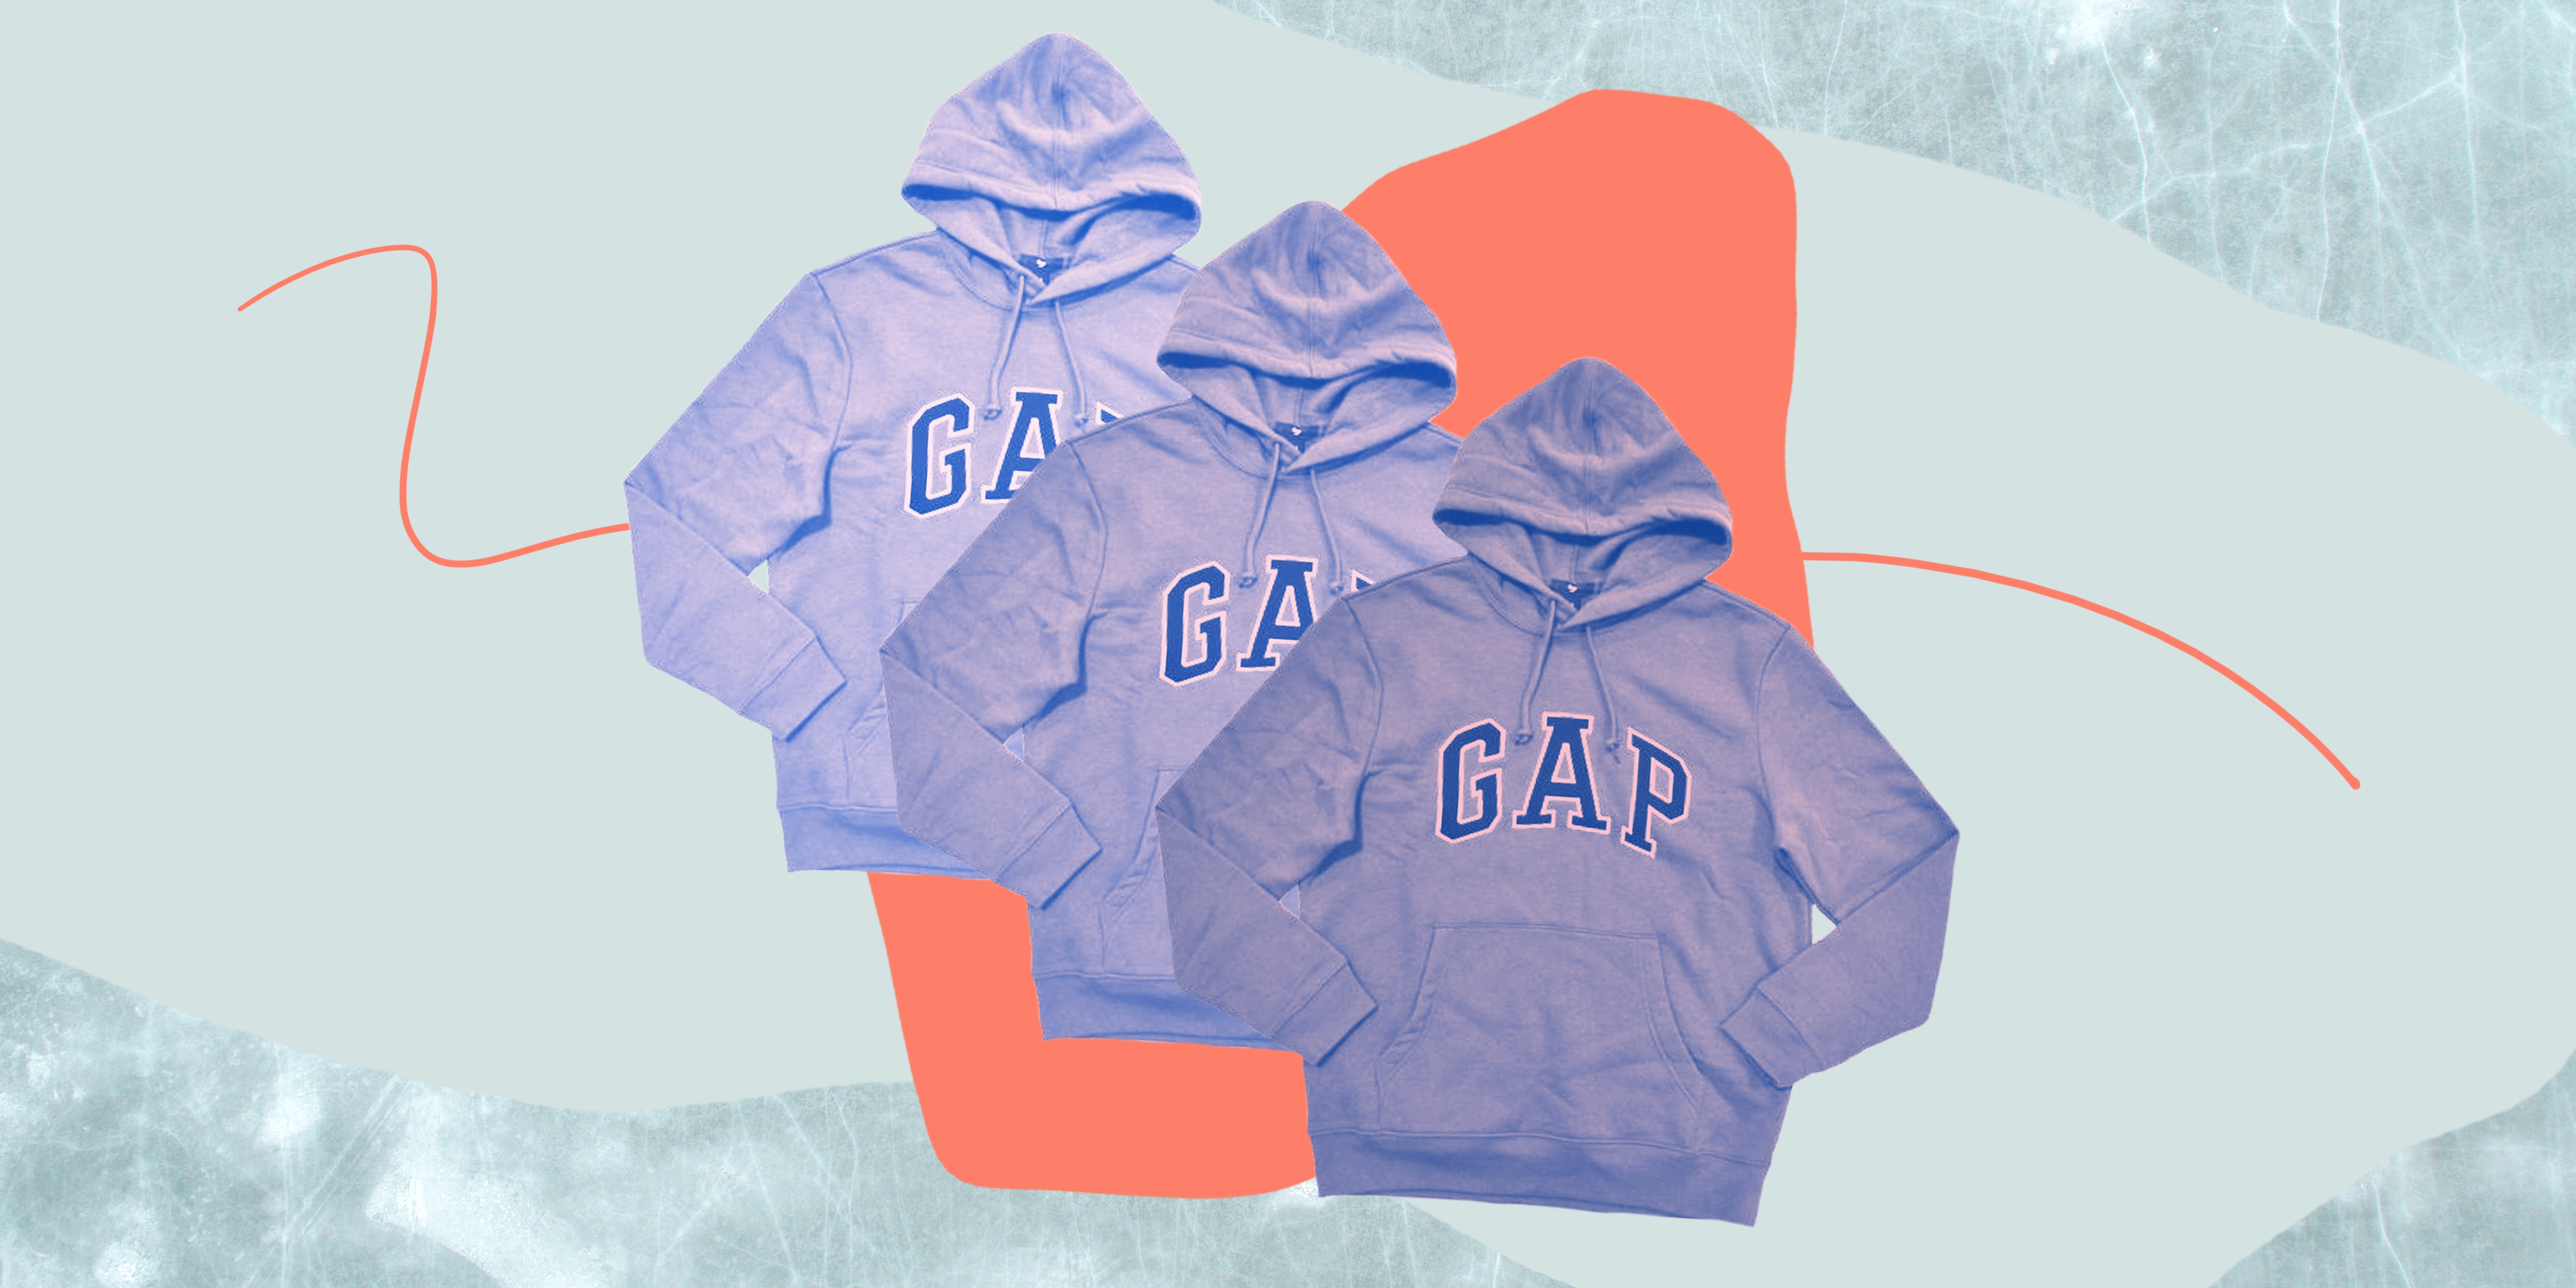 763f9130432 What Does Gap Stand For? The History Of The Schoolyard Taunt Of Gap ...